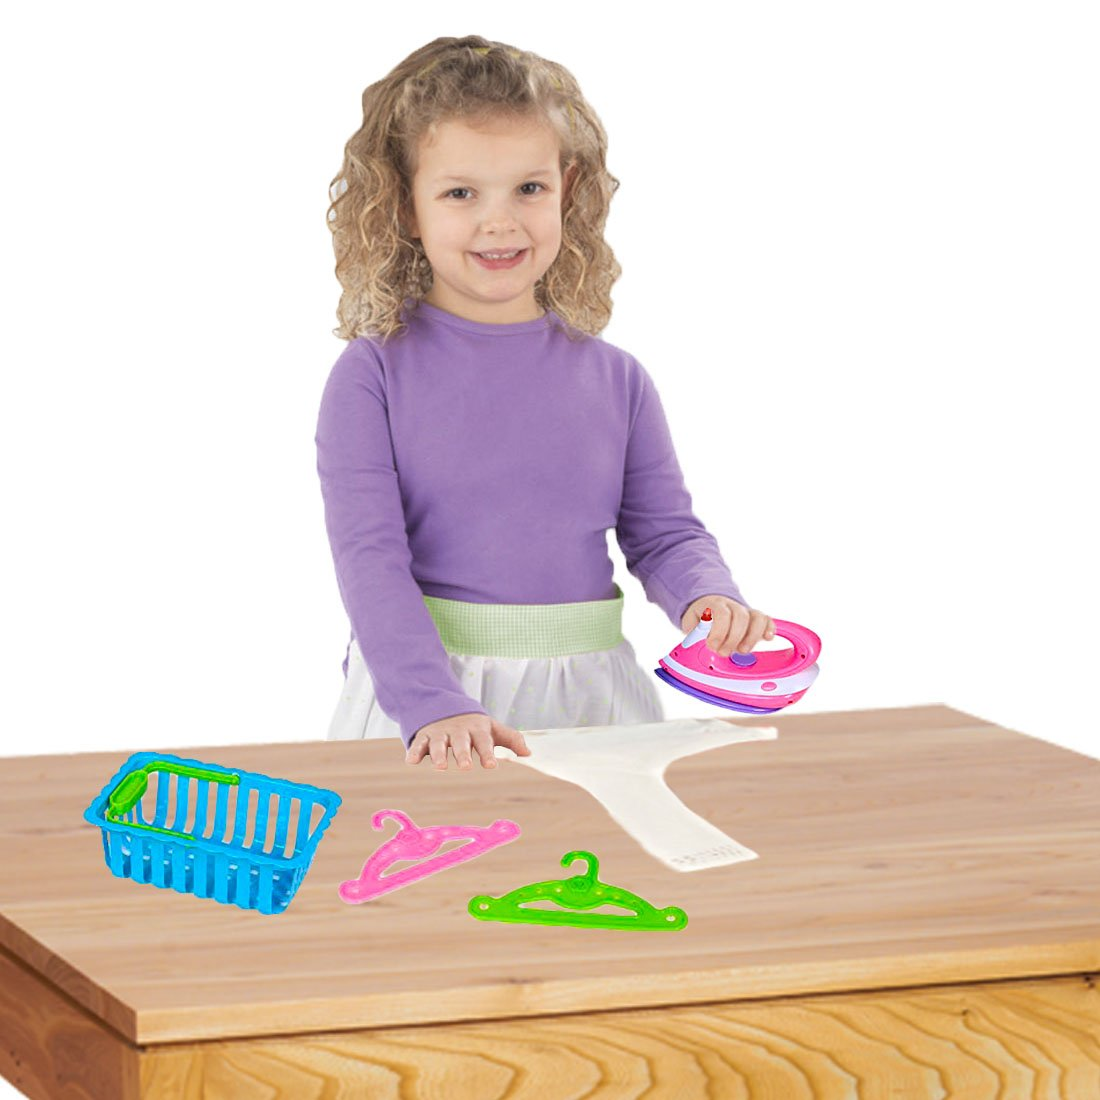 Dazzling Toys Toy Iron Set | Happy Family Kids Pretend Play Ironing Set Includes Ironer, Laundry Basket, and Accessories. by Dazzling Toys